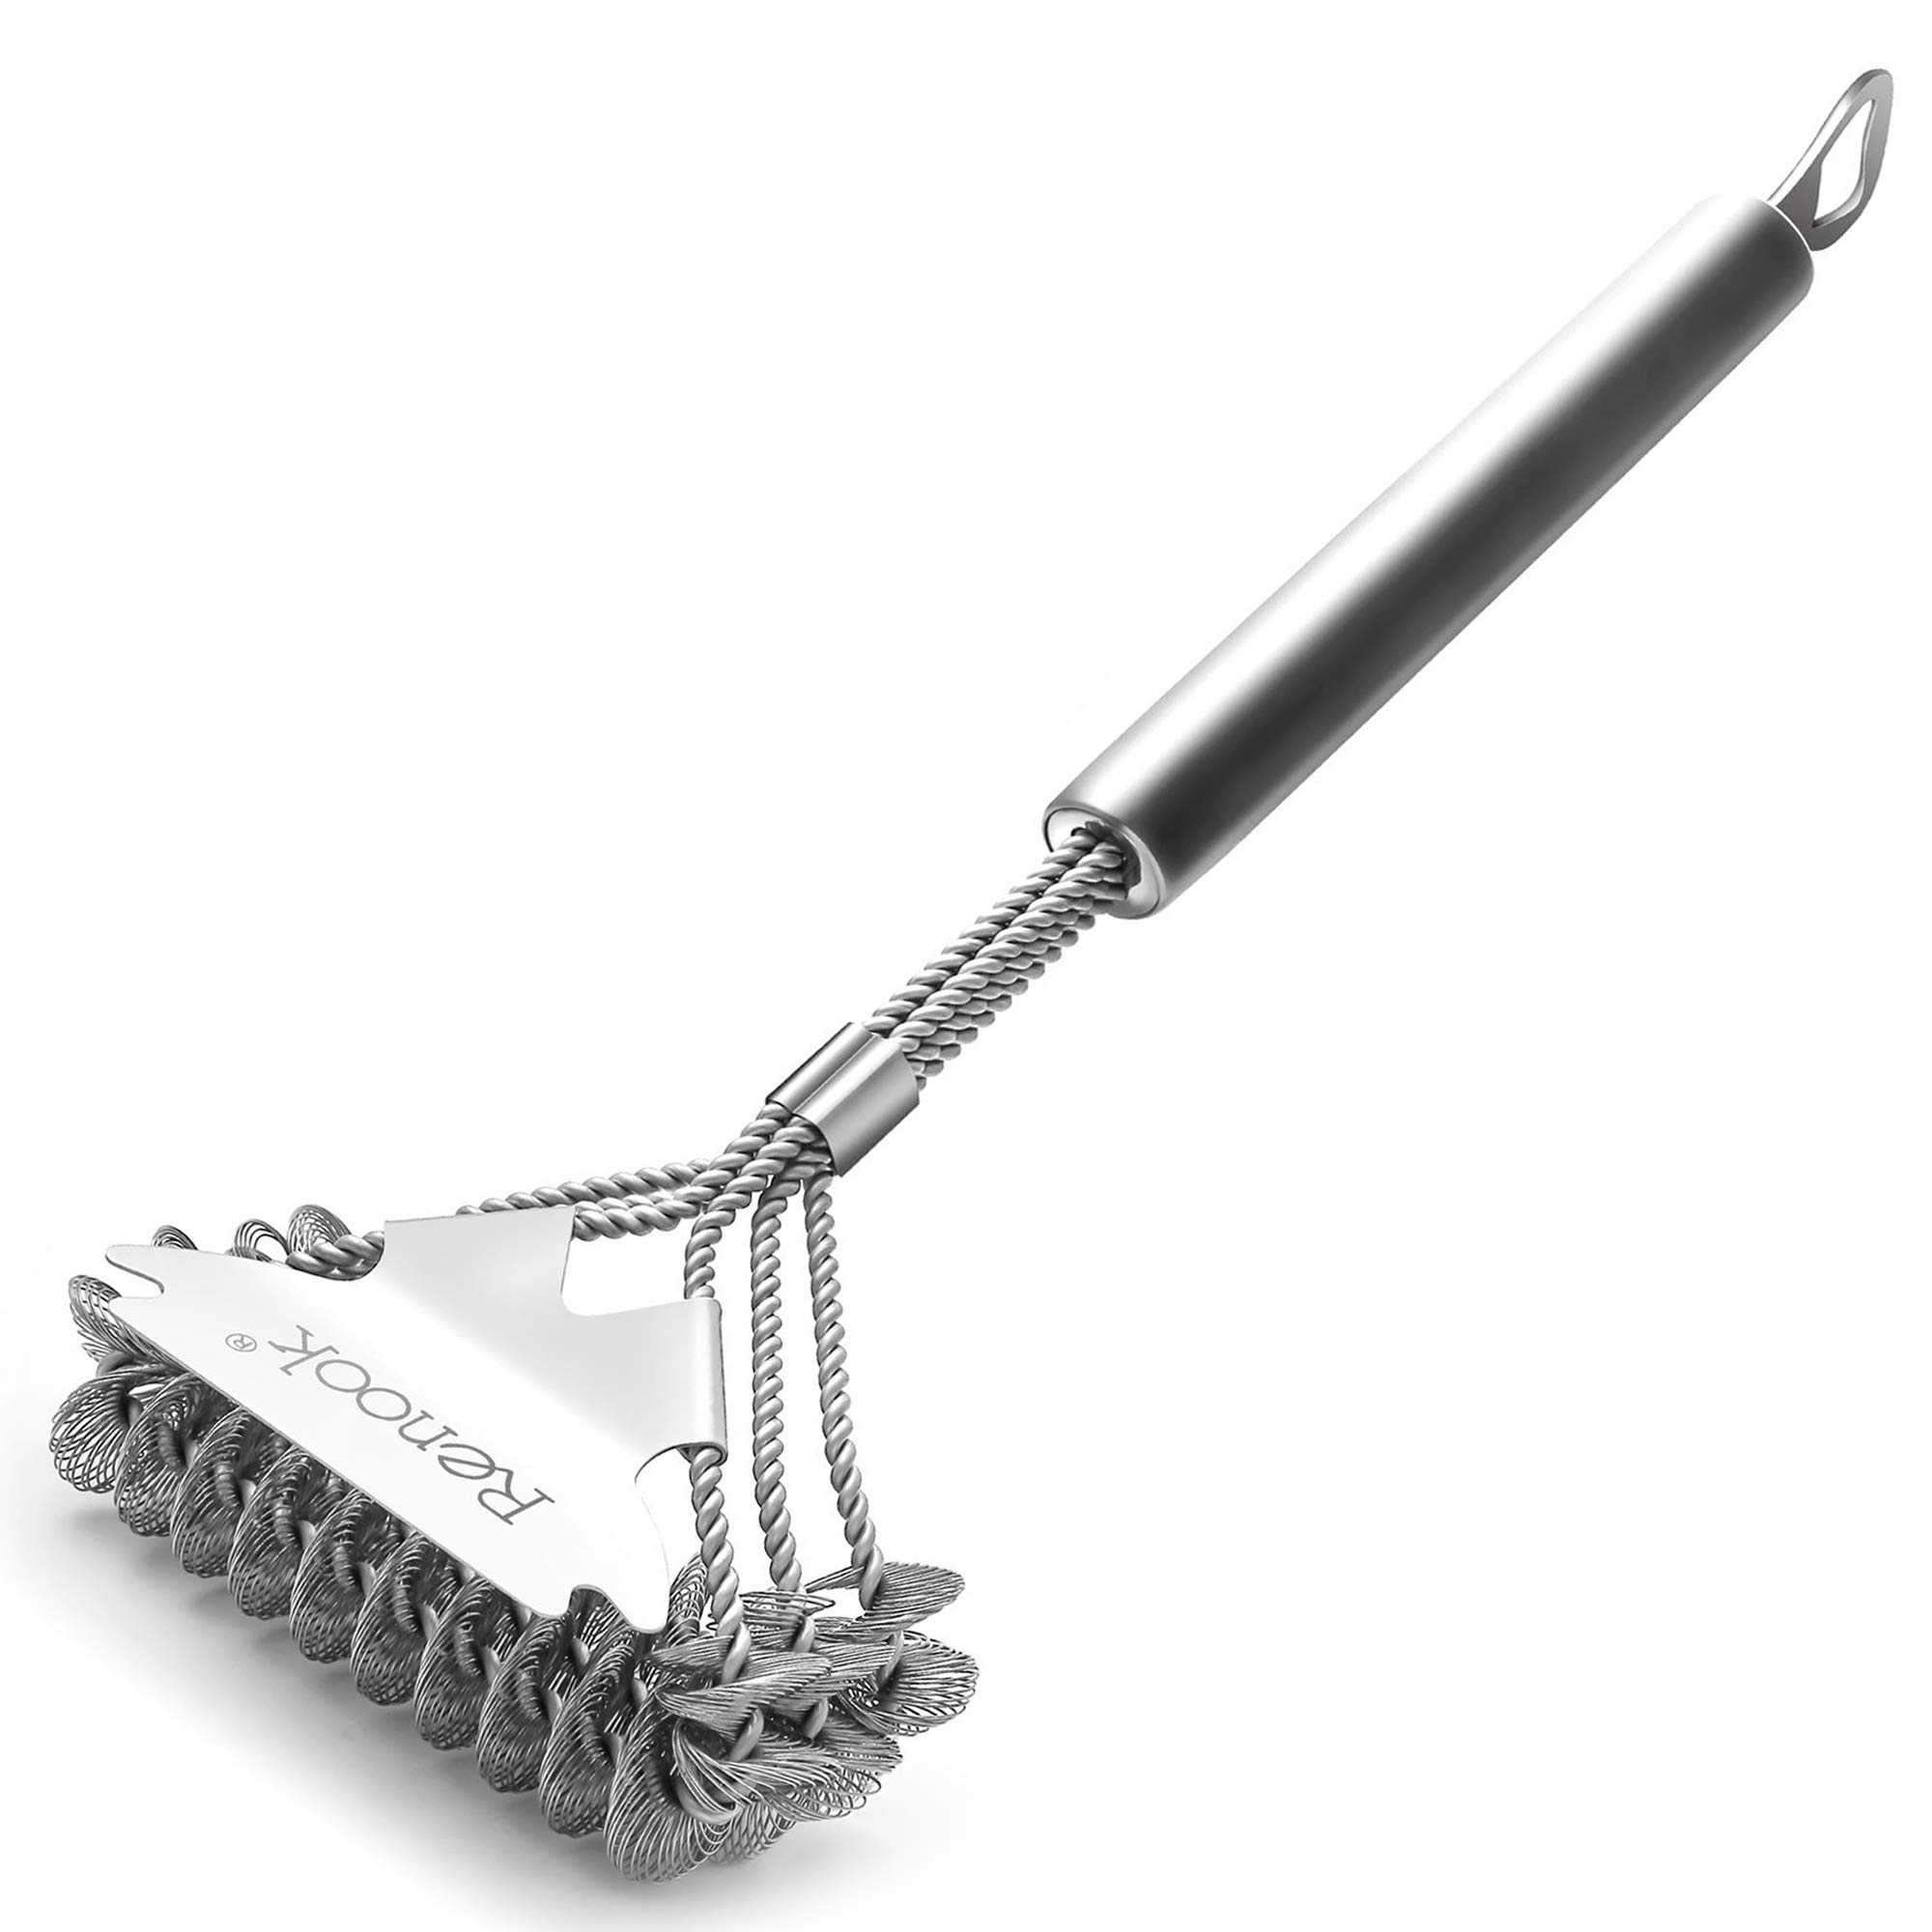 RENOOK Safe Grill Brush Bristle-Free Stainless- Steel Handle with Effective Scraper. Stainless -Steel Grill Cleaner for Weber Gas/Charcoal Porcelain/Ceramic/Steel etc-18 Inches.